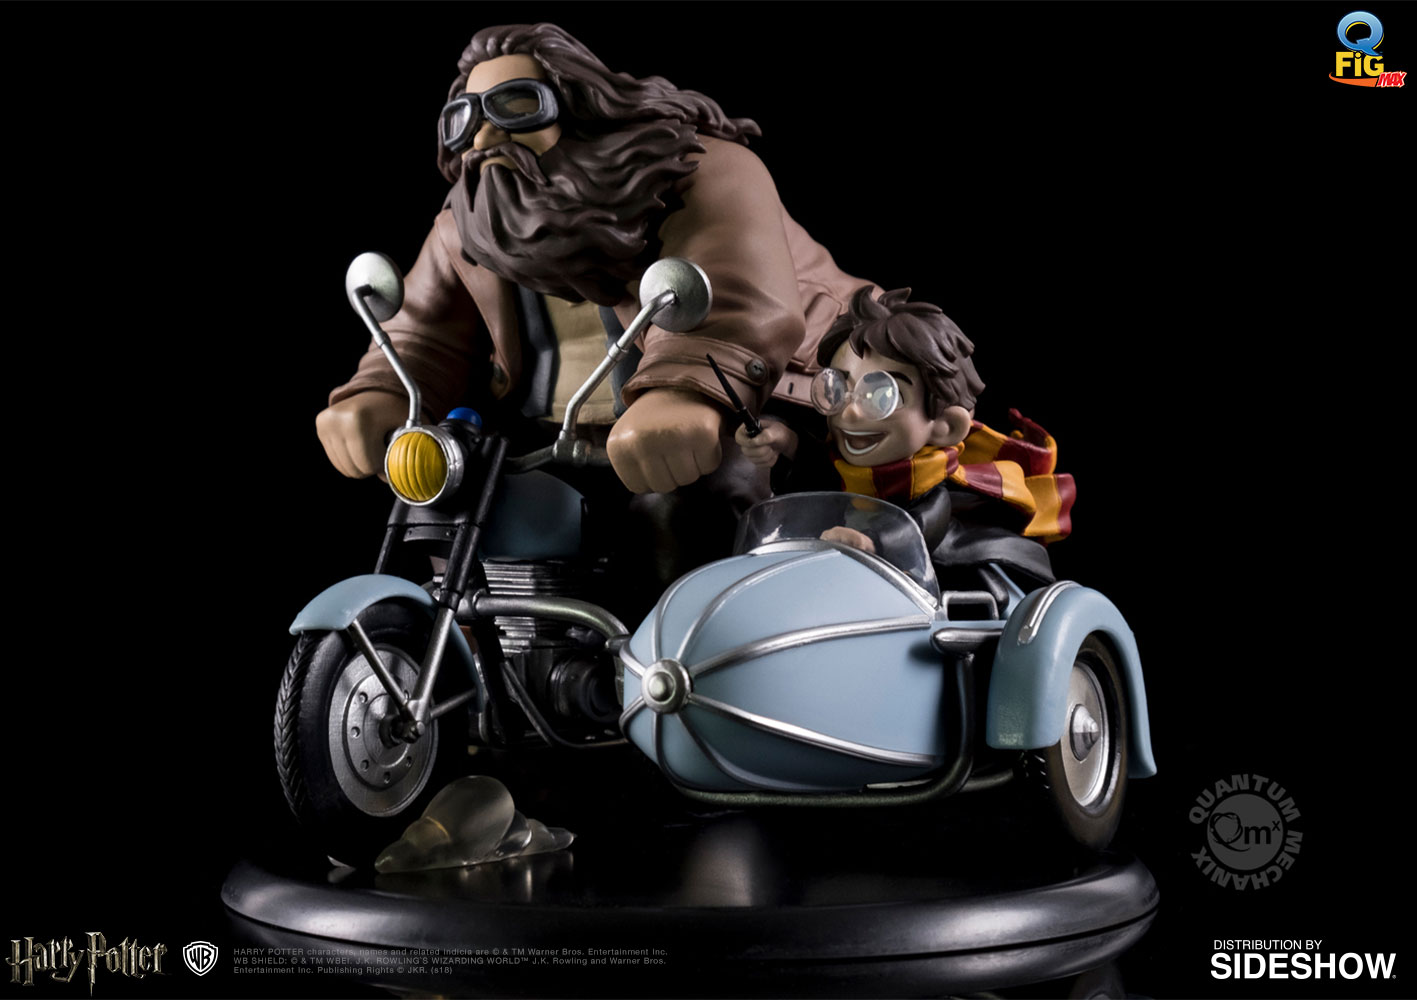 Let Your Geek Sideshow: Win Harry Potter and Rubeus Hagrid Q-Fig Max! Giveaway Image